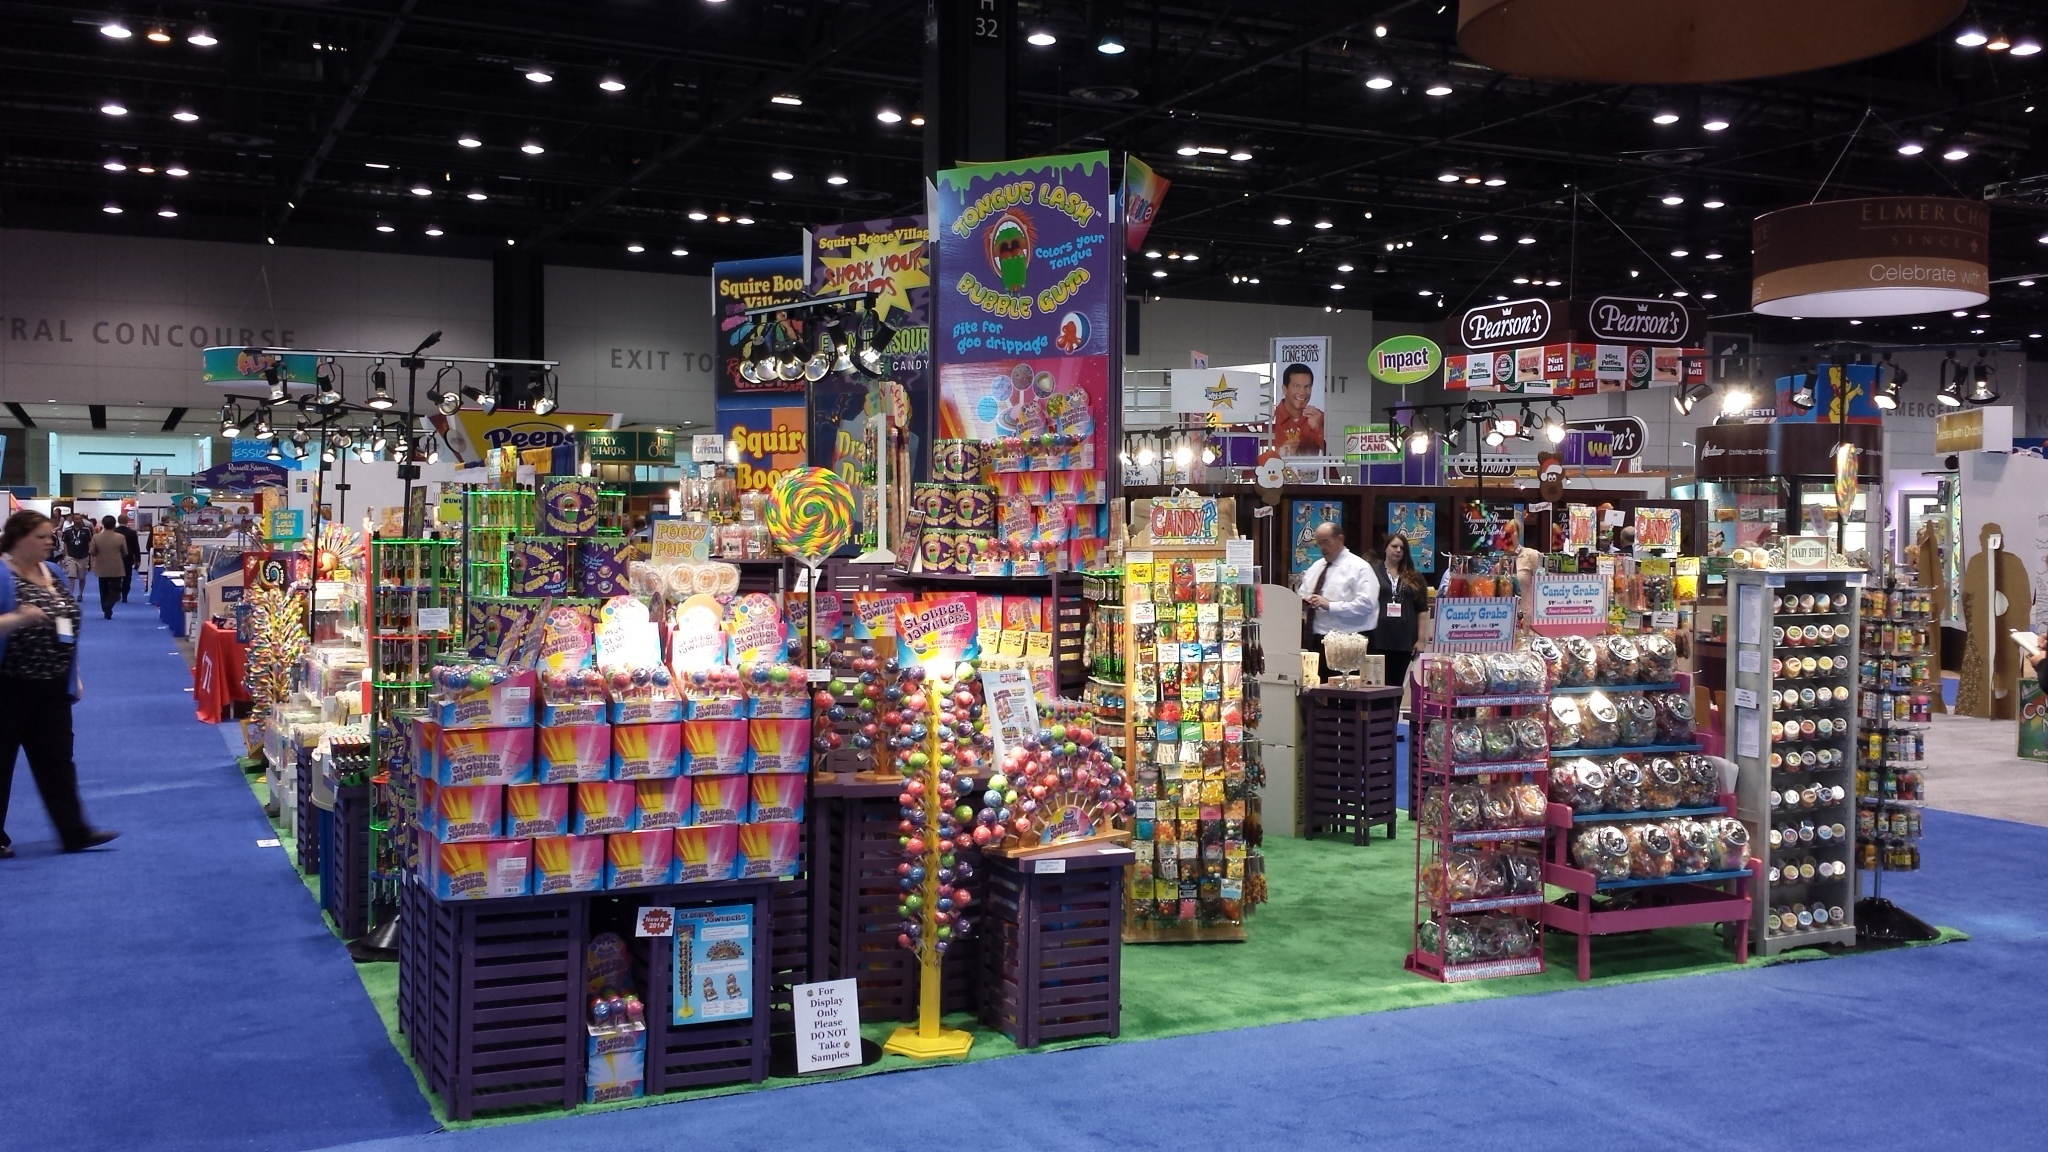 Squire boone village wholesale candy souvenirs jewelry for Craft supply trade shows